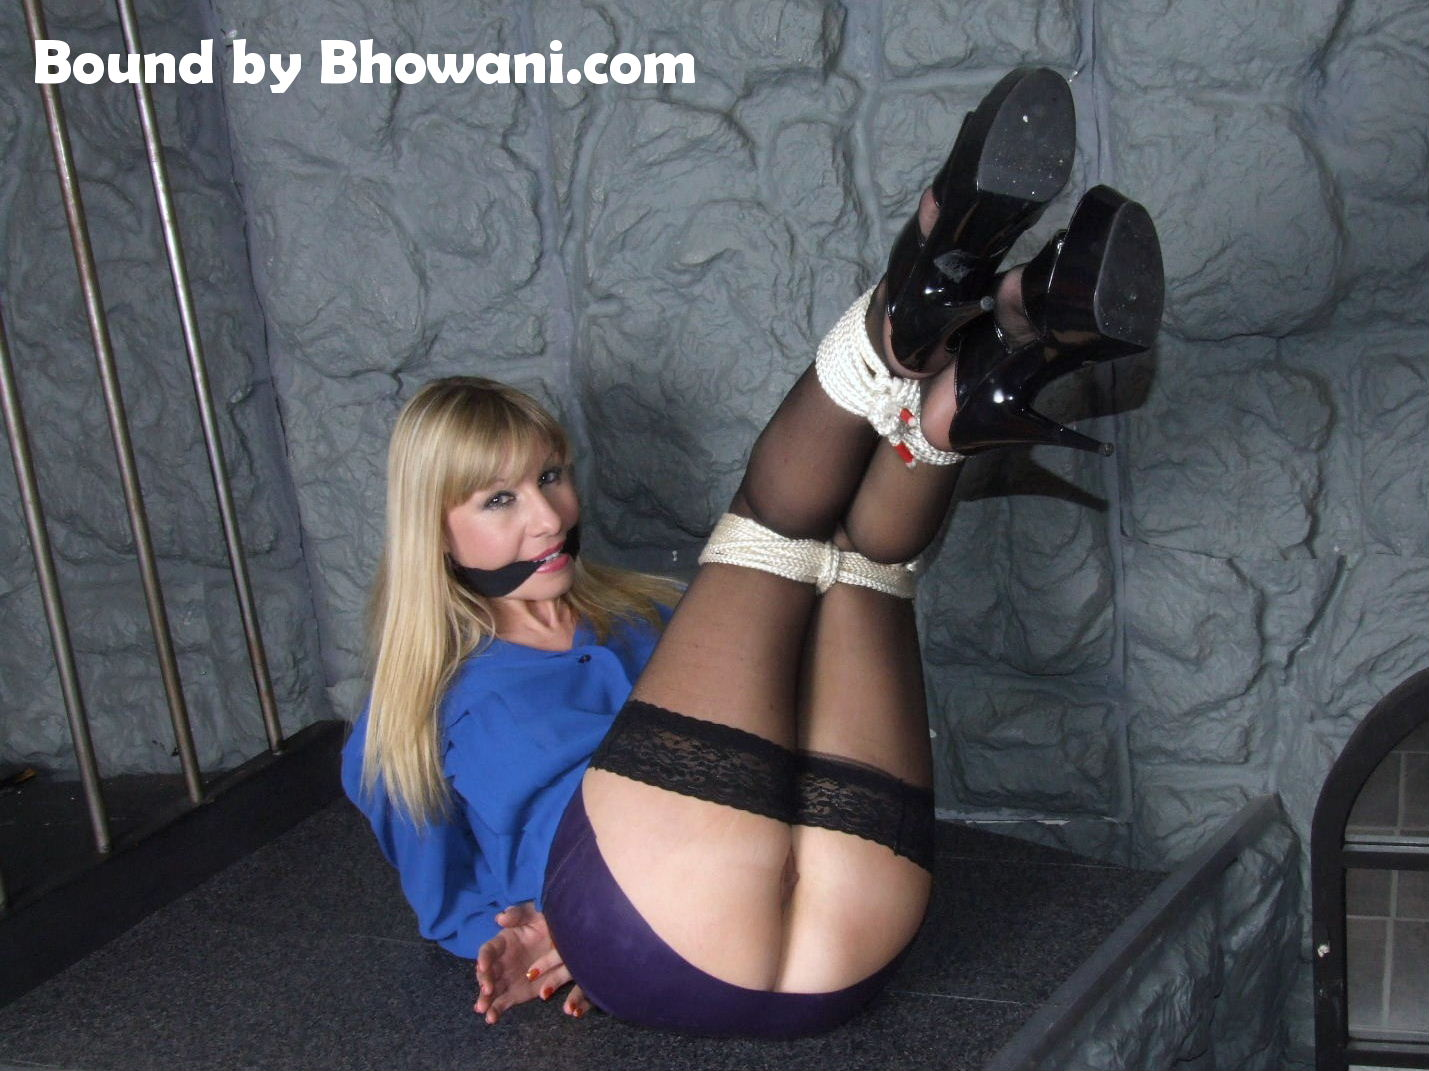 Fun in the Dungeon